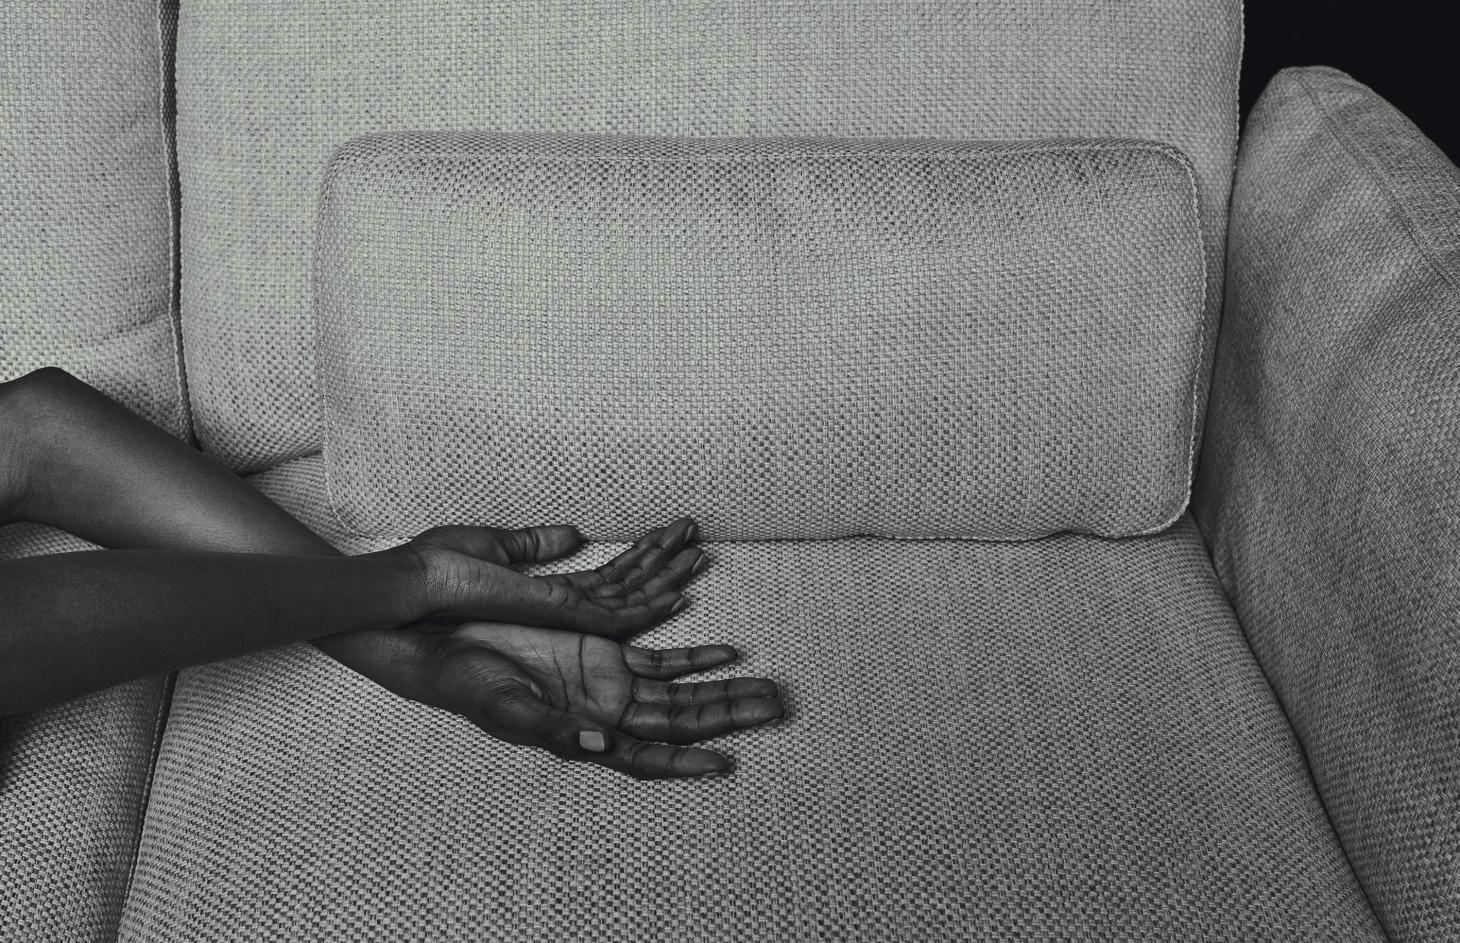 Hands on sofa photograph from Patrick Norguet Dialogues Book